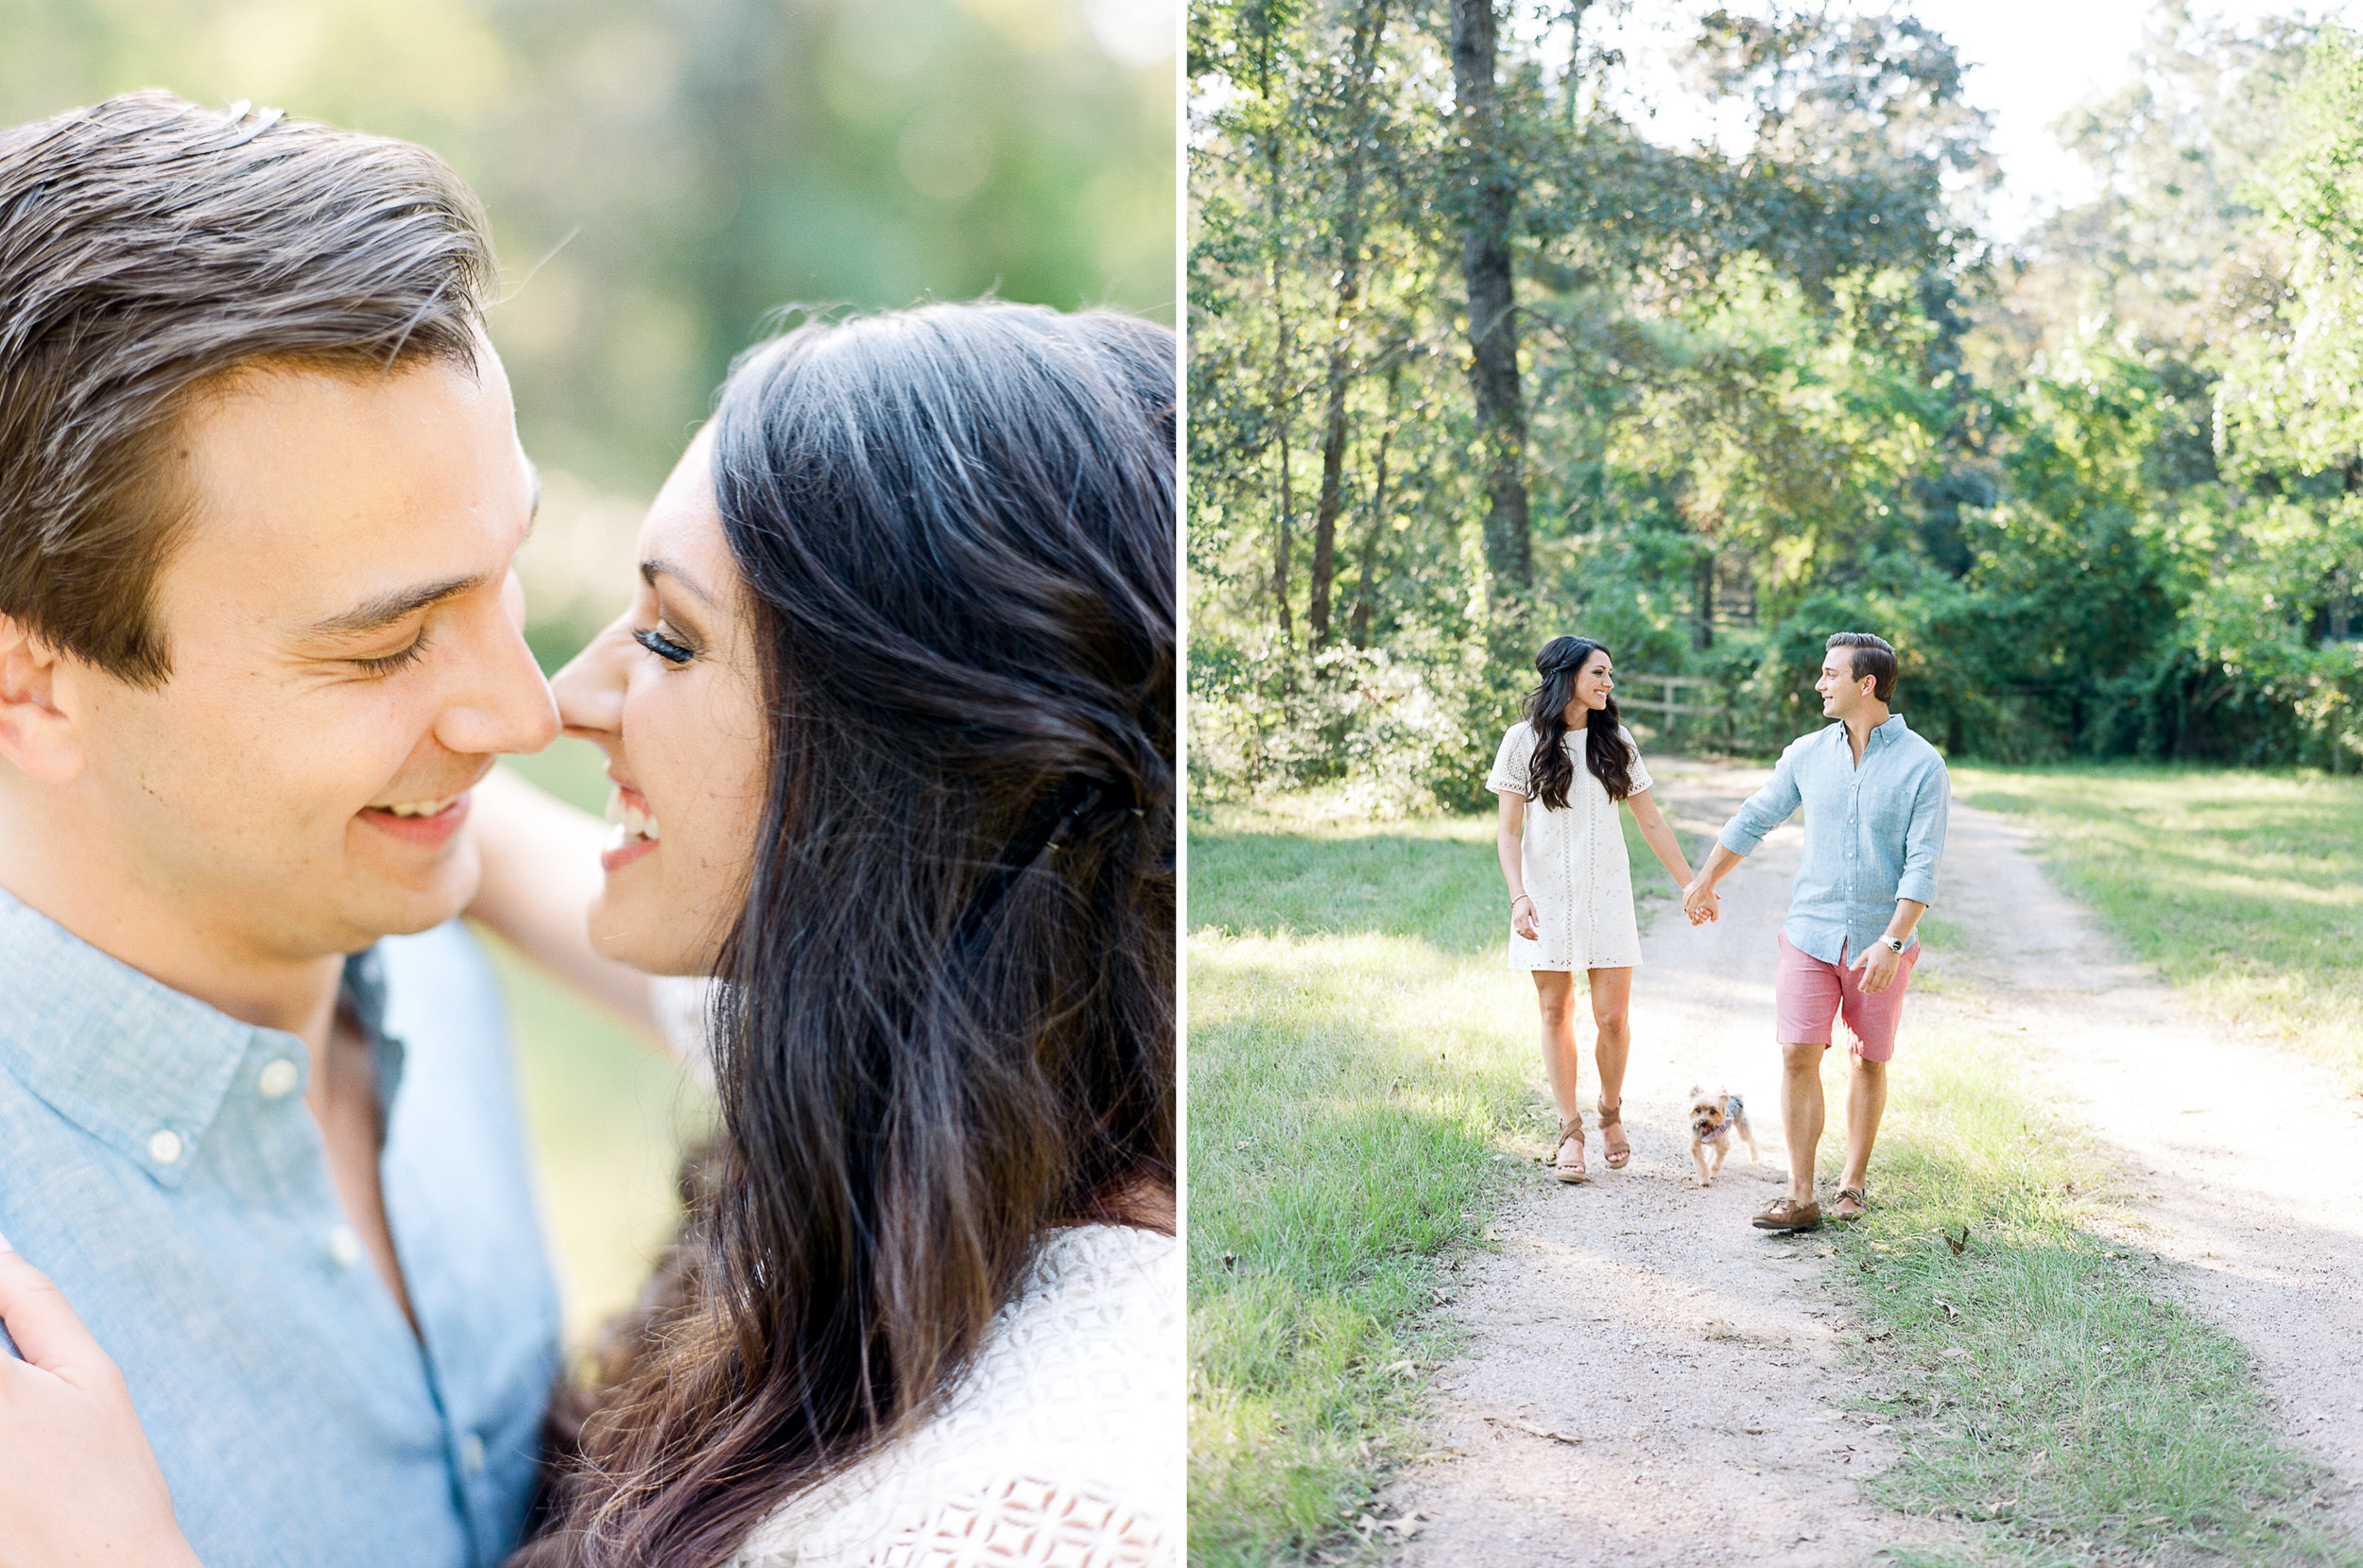 houston-wedding-photographer-engagements-engagement-session-houston-portrait-photographer-film-austin-wedding-photography-105.jpg